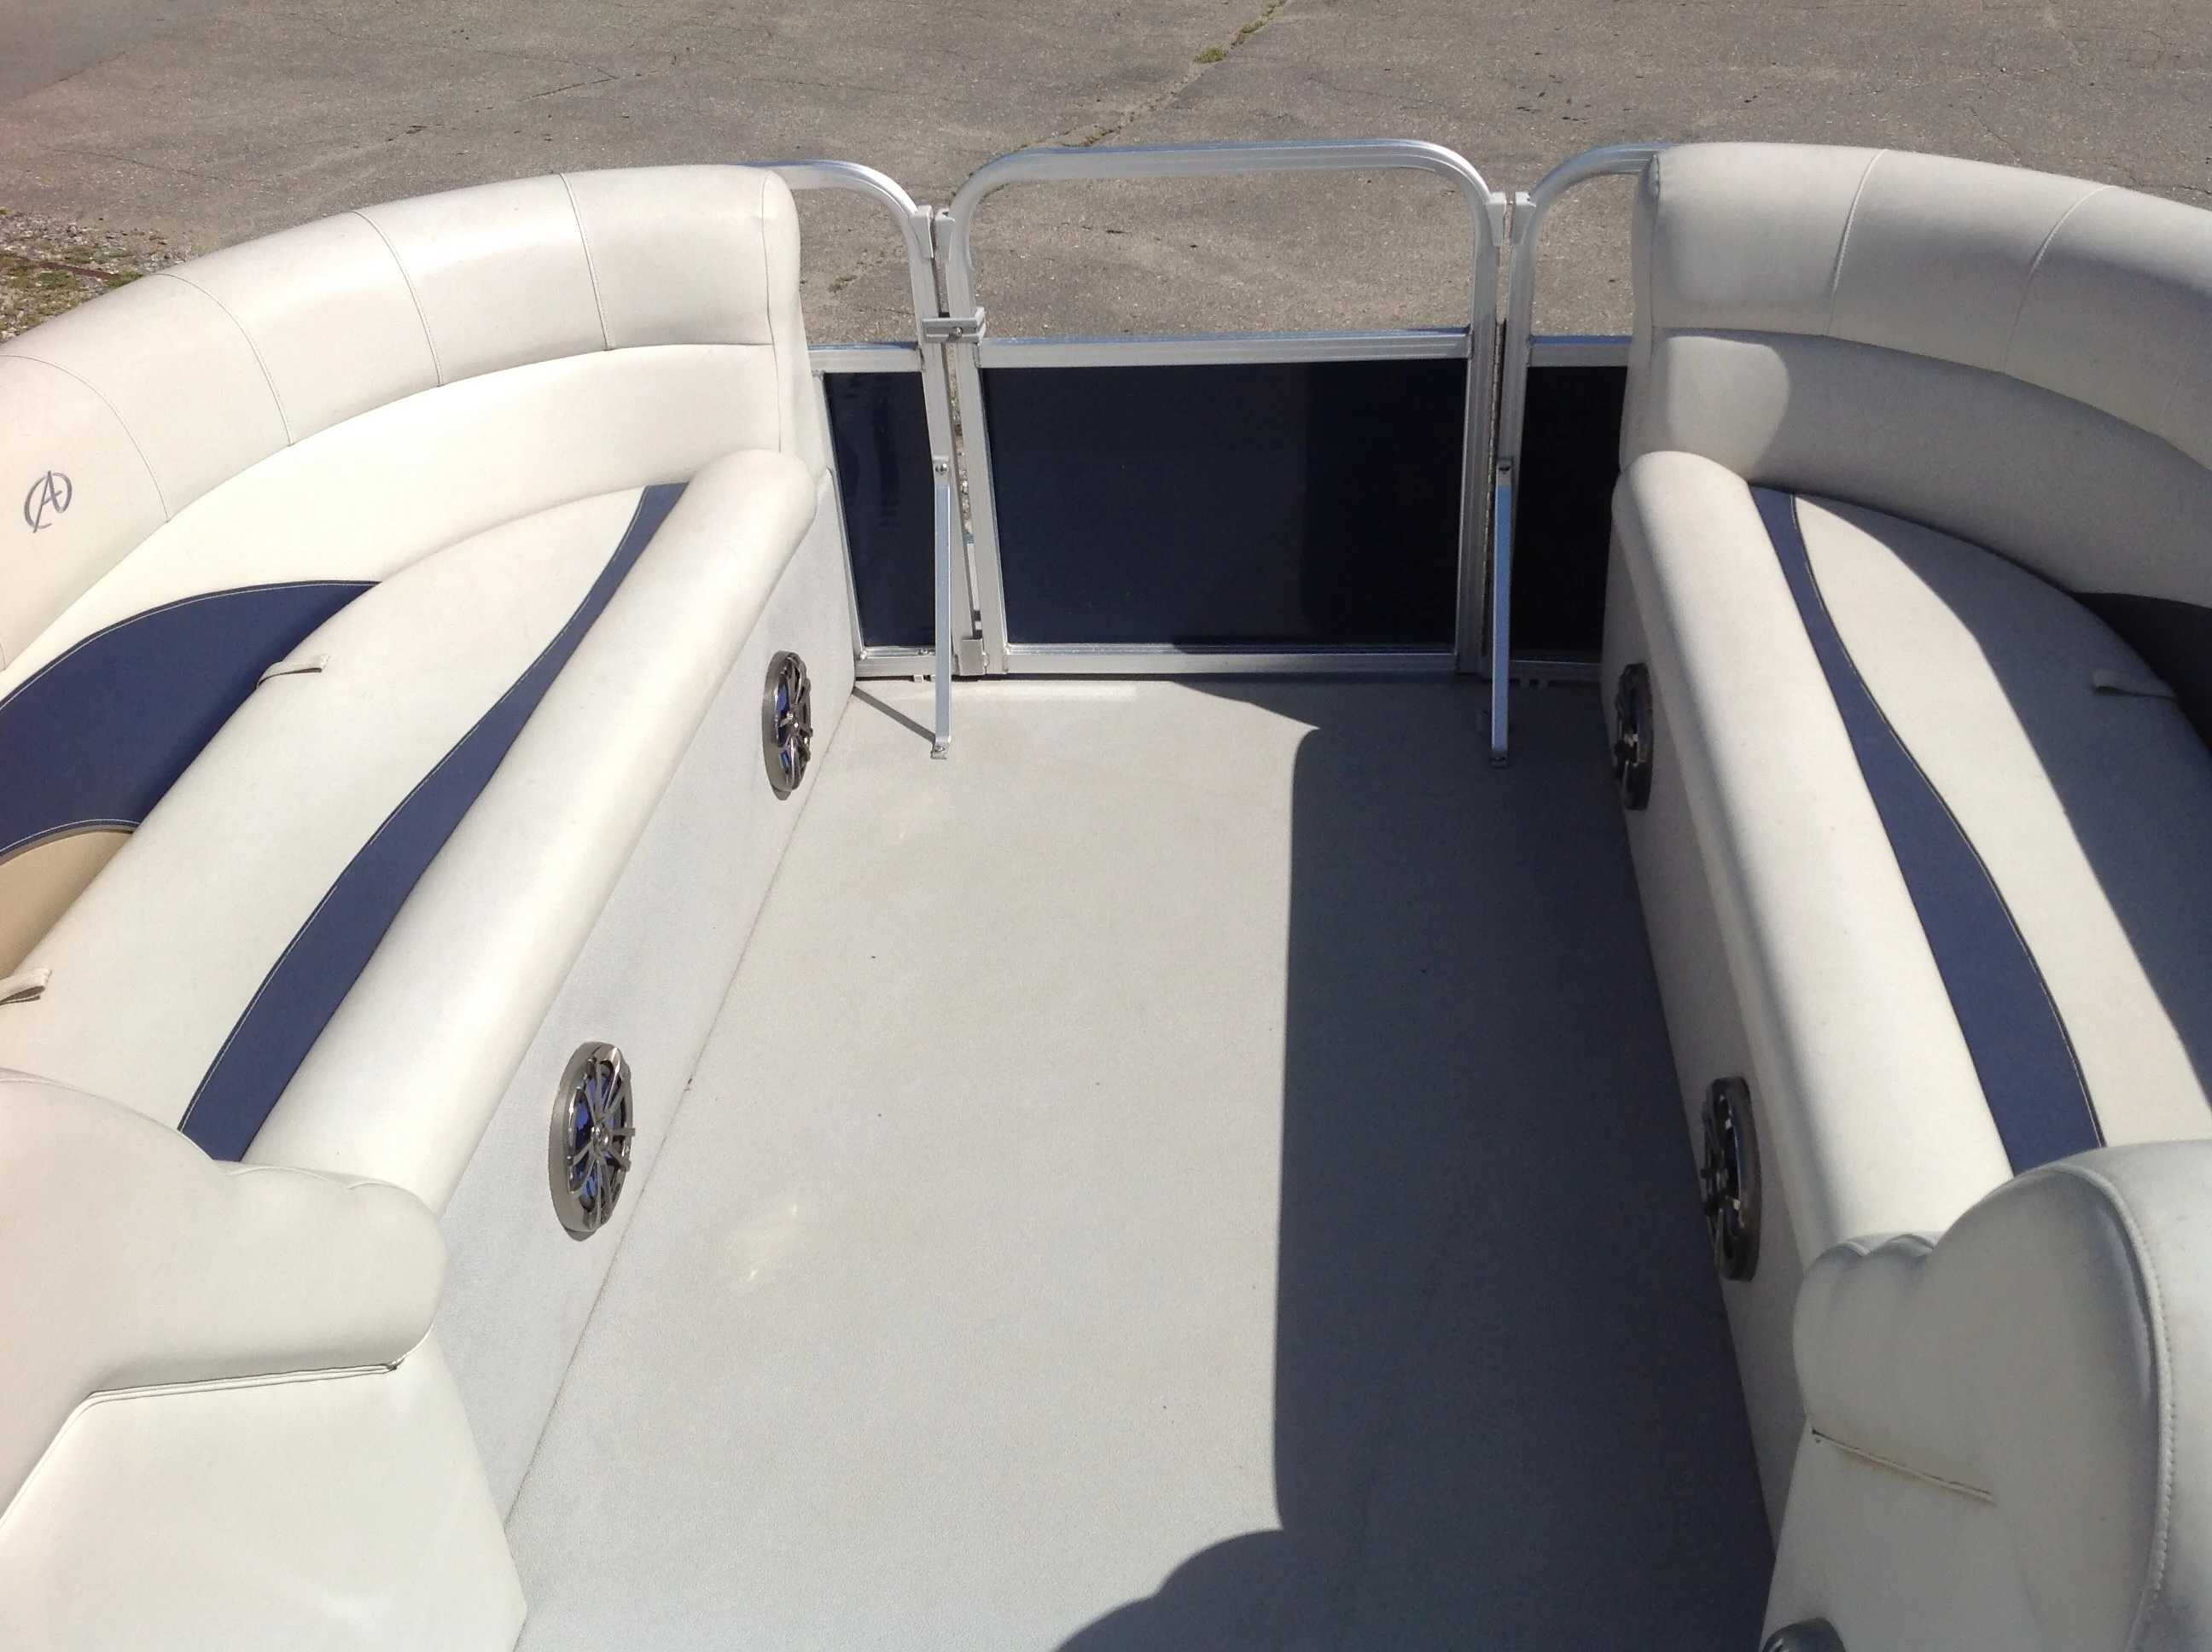 2012 Avalon boat for sale, model of the boat is Catalina Drl 2485 & Image # 3 of 14